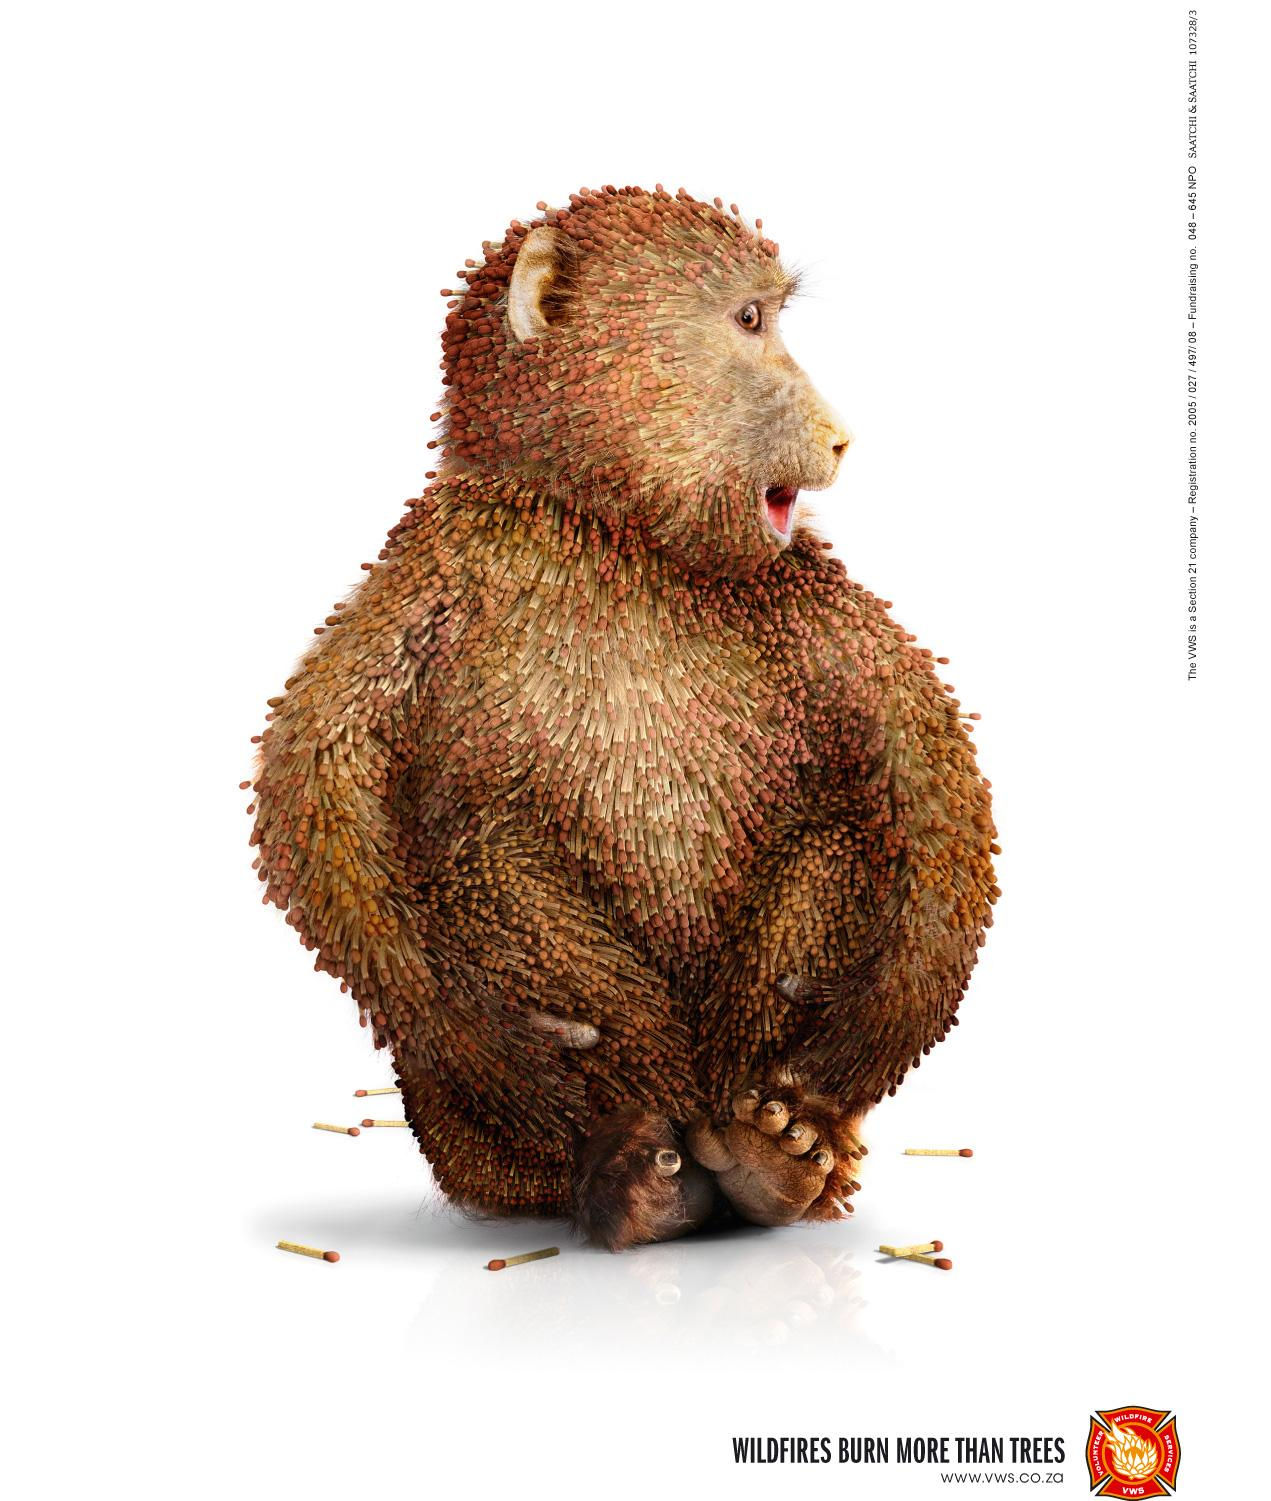 Volunteer Wildfire Services Print Ad -  Match Baboon